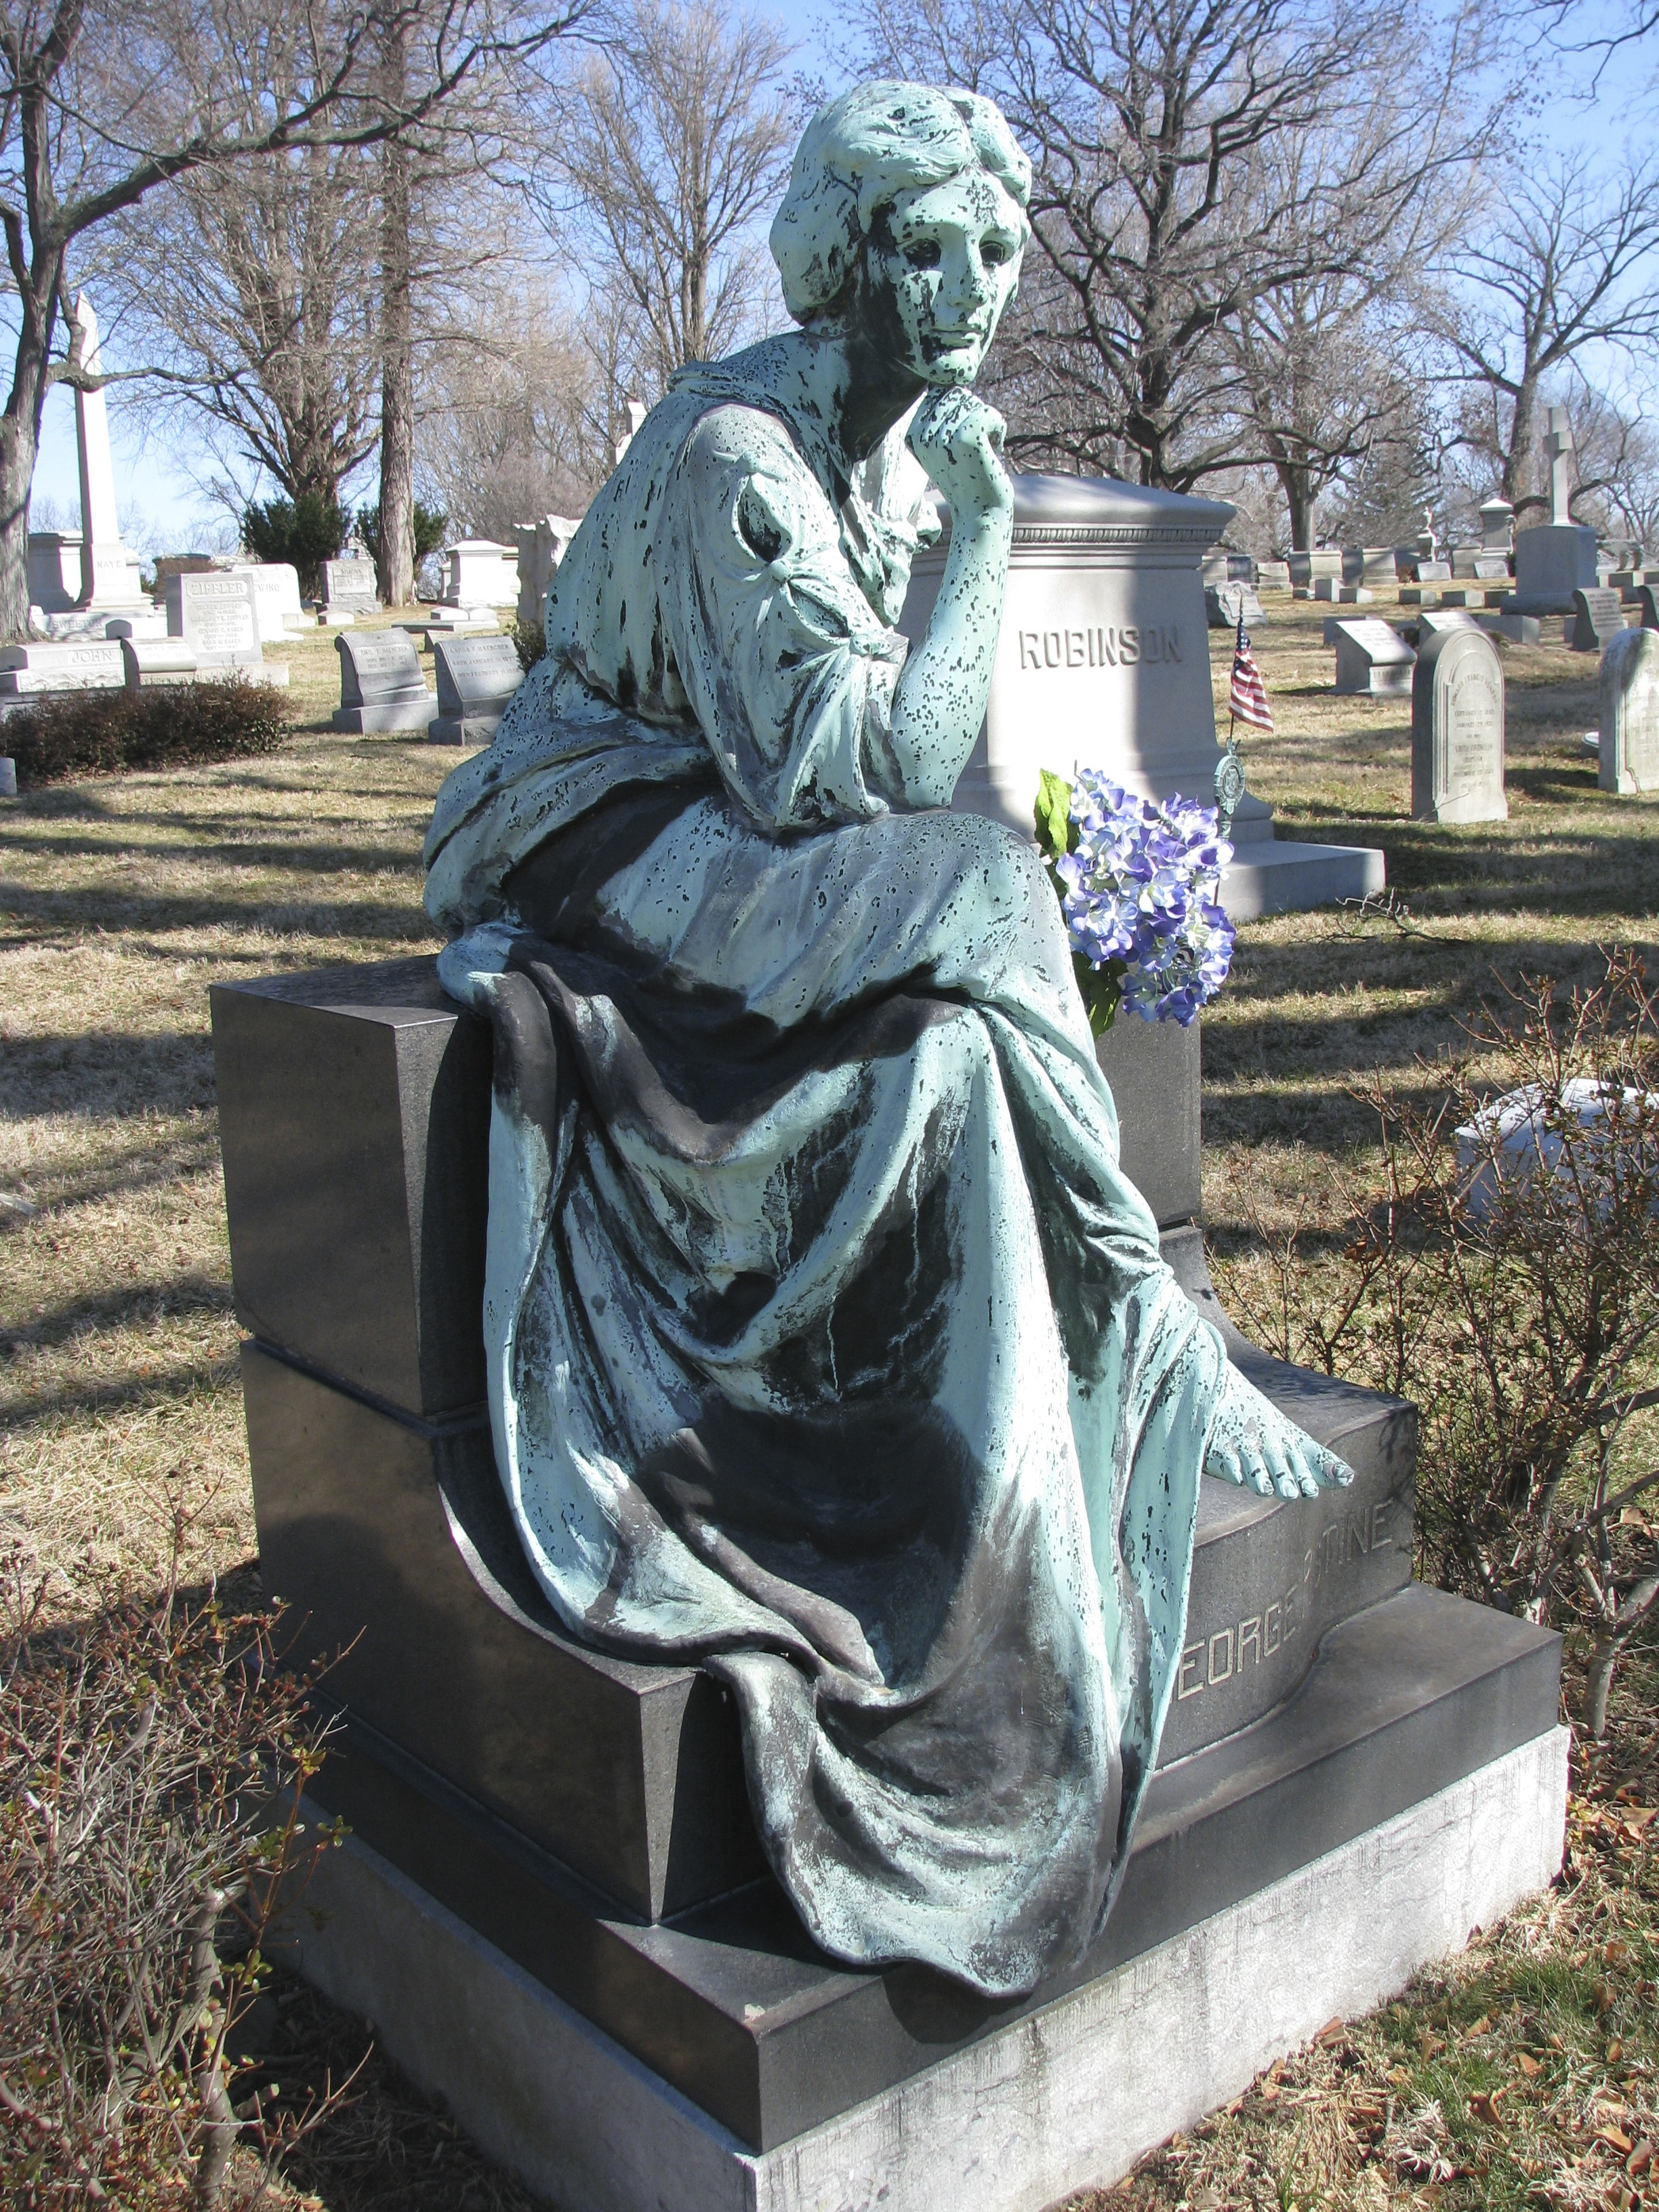 My fave statue in the cemetery.